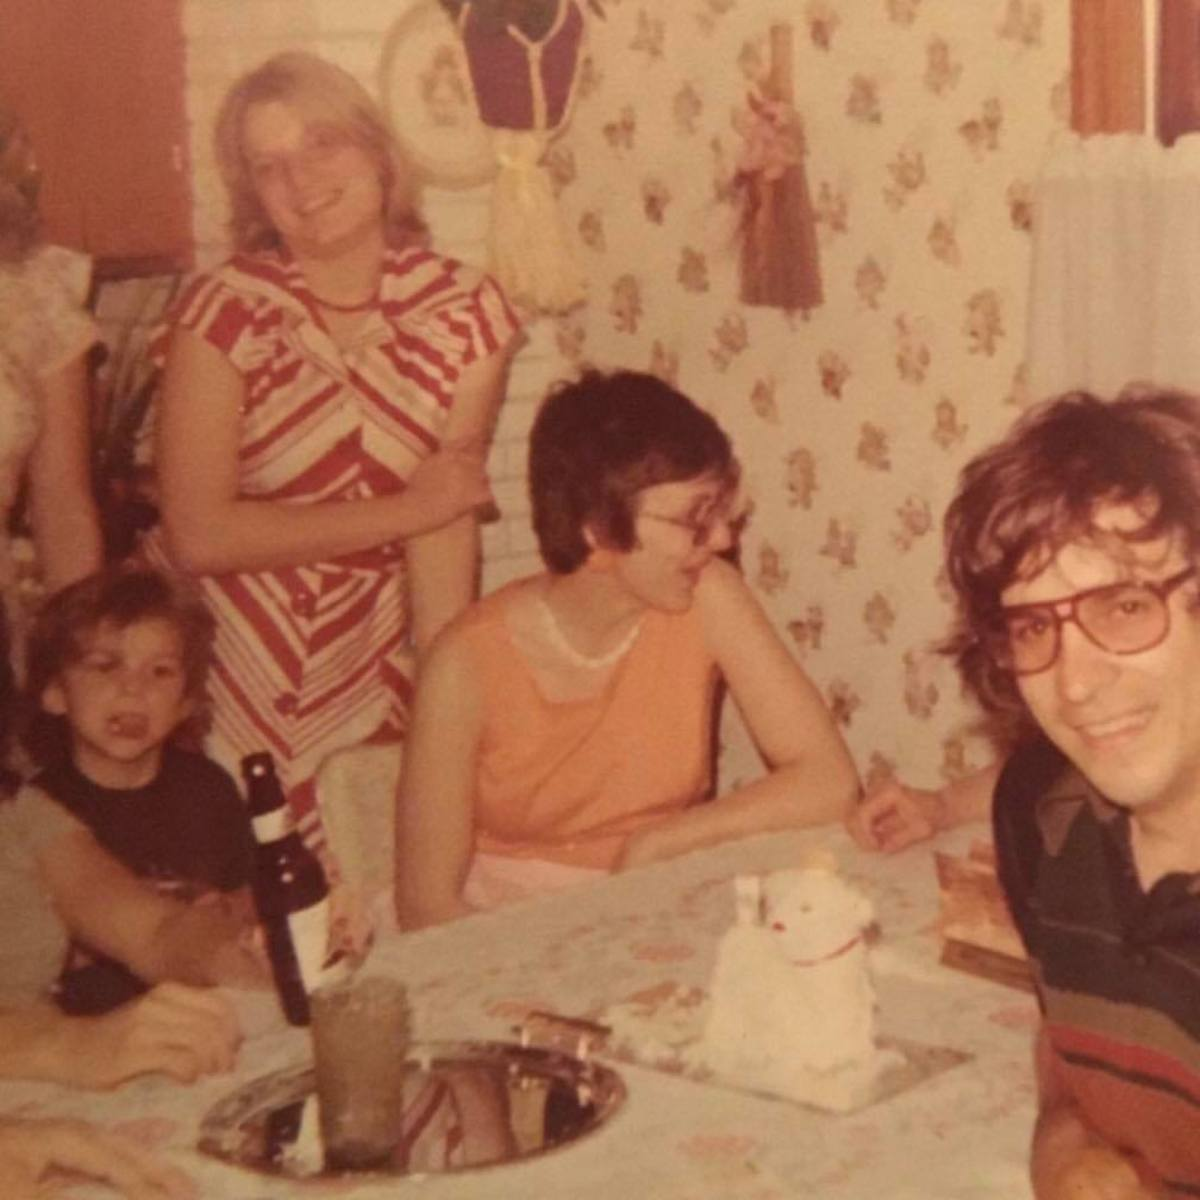 Here's a photo of my dad, my aunts and I in the late 1970s. This is the look my dad rocked back when we built our robot.